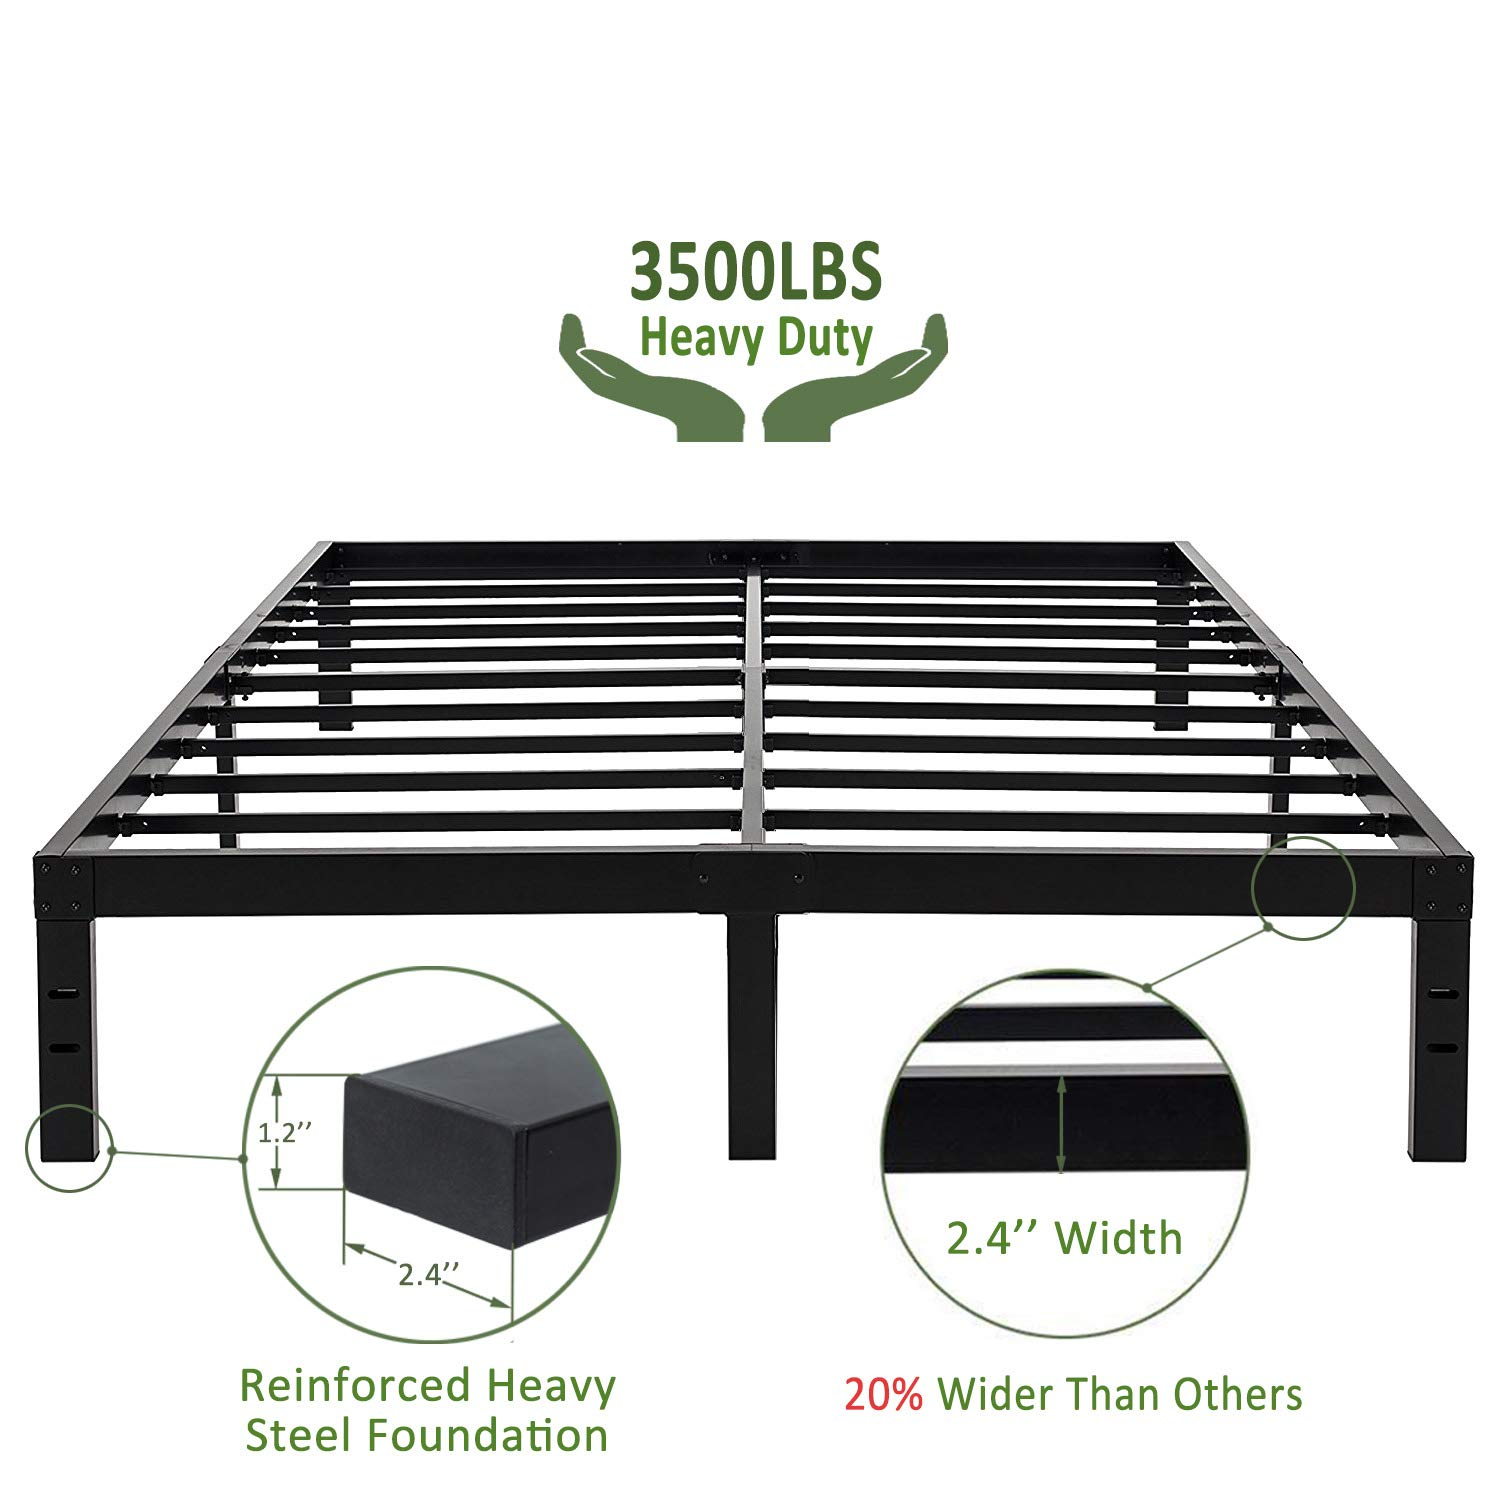 Heavy Duty Bed Frames For Obese People And Overweight | For Big & Heavy  People